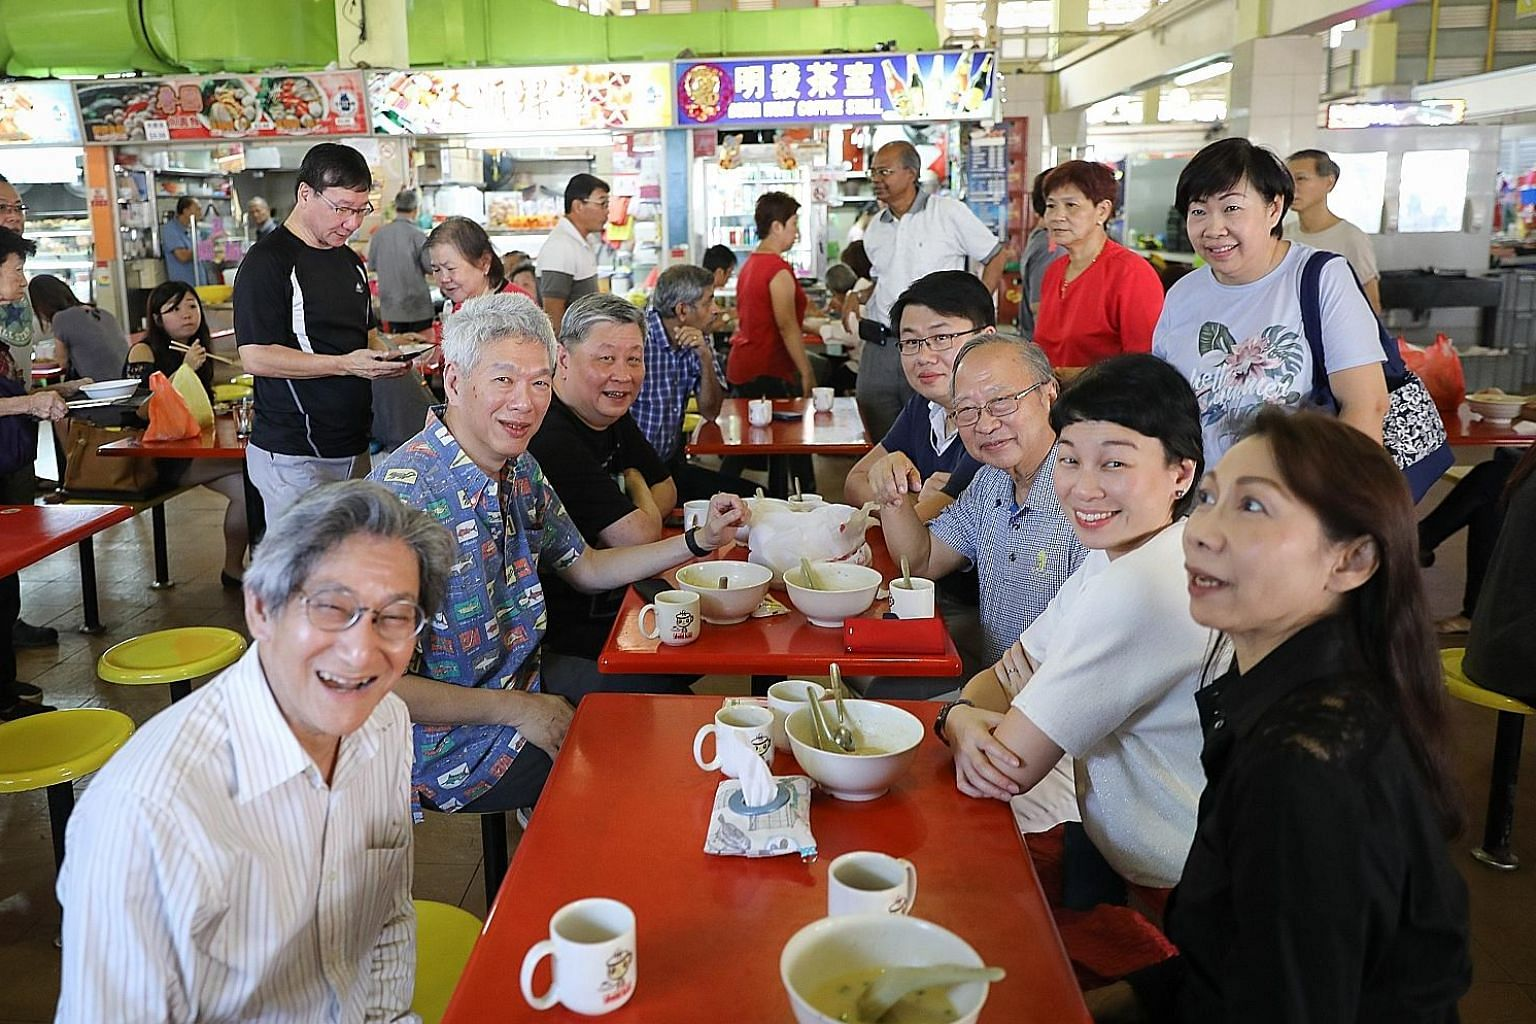 Dr Tan Cheng Bock (seated third from bottom right) and Mr Lee Hsien Yang (second from bottom left) having breakfast at West Coast Market and Food Centre yesterday.